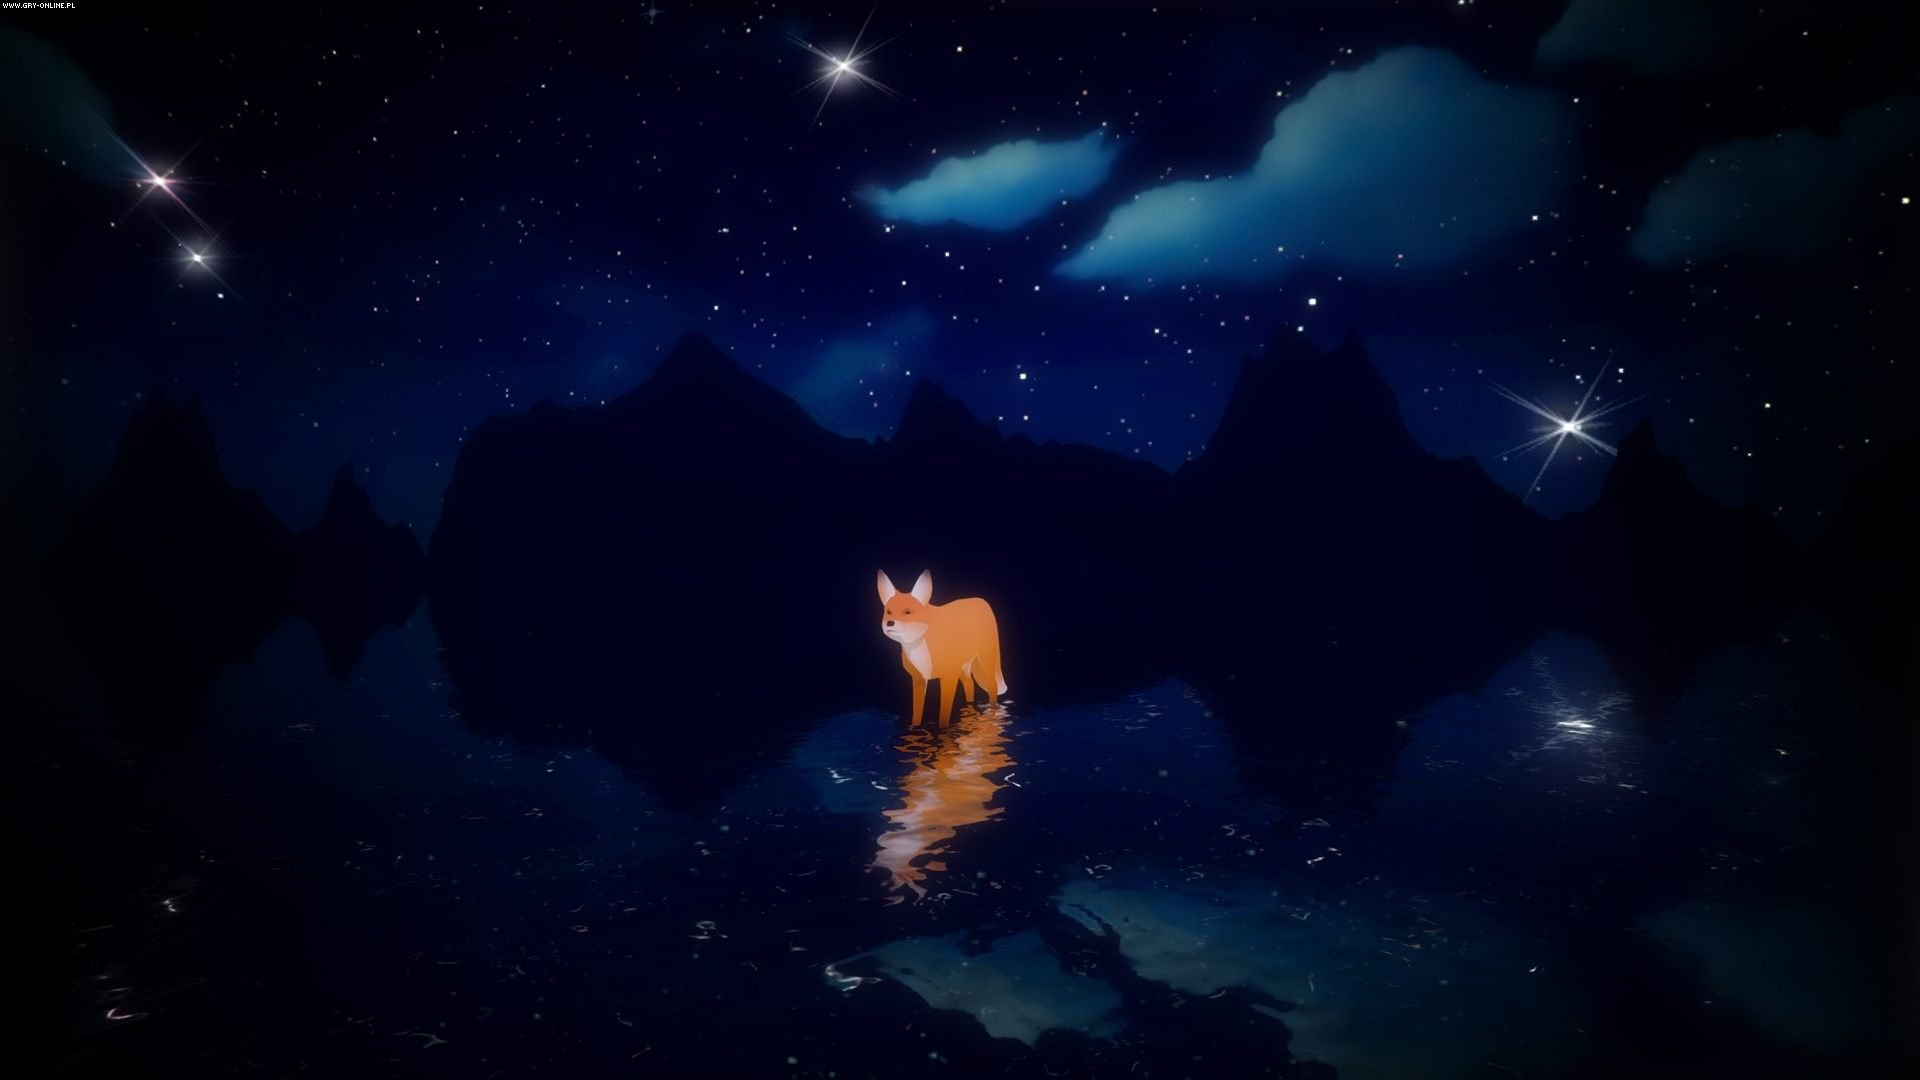 The fox walking on water amidst stars